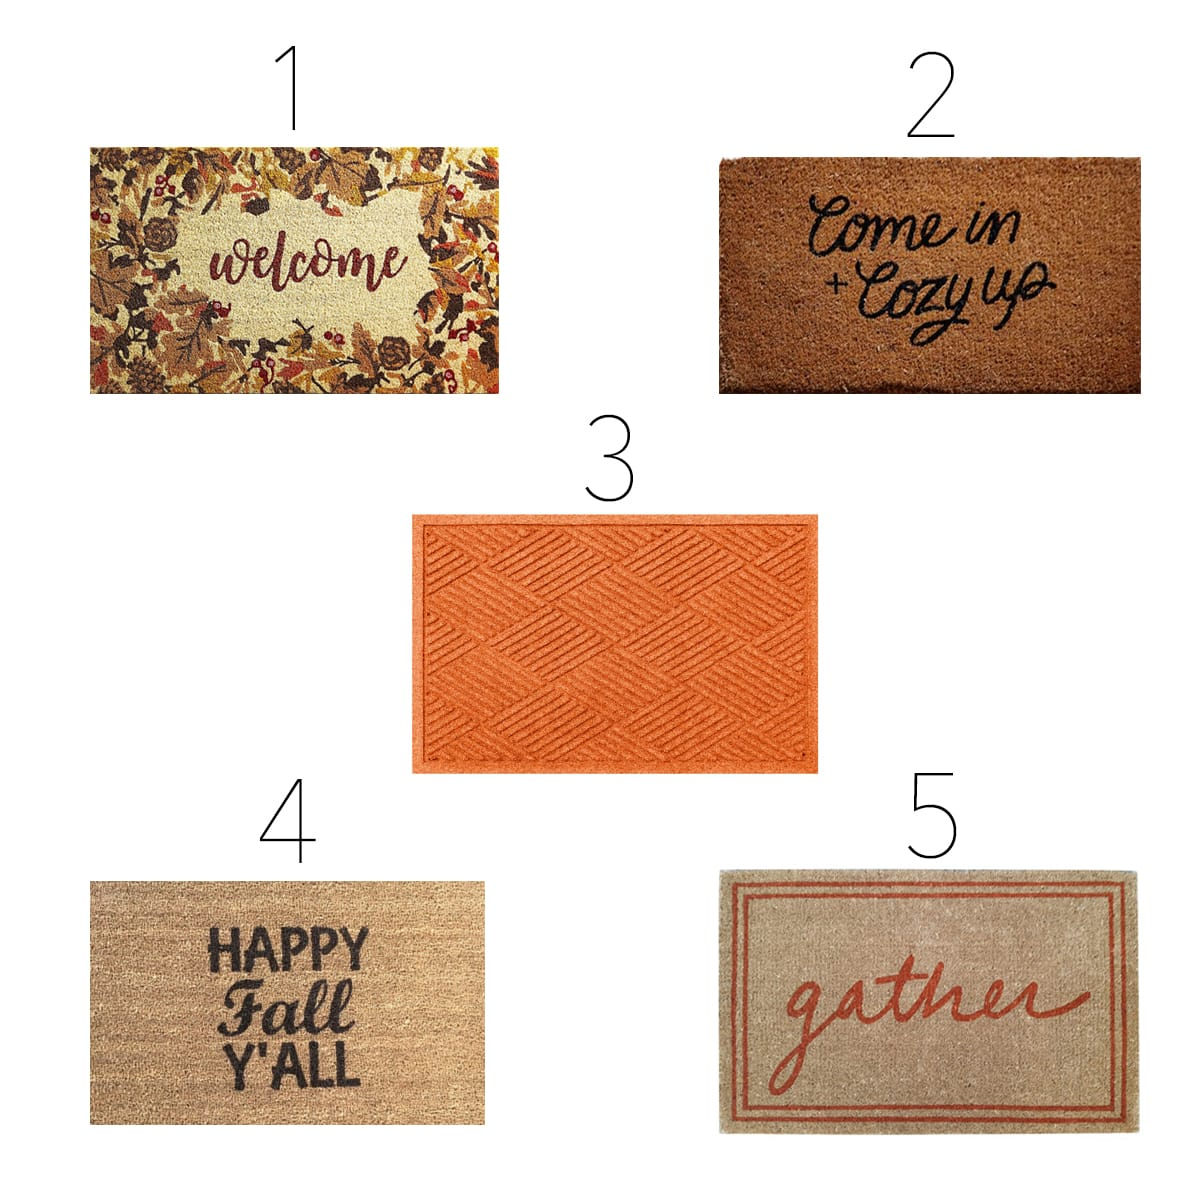 Fall-inspired doormats